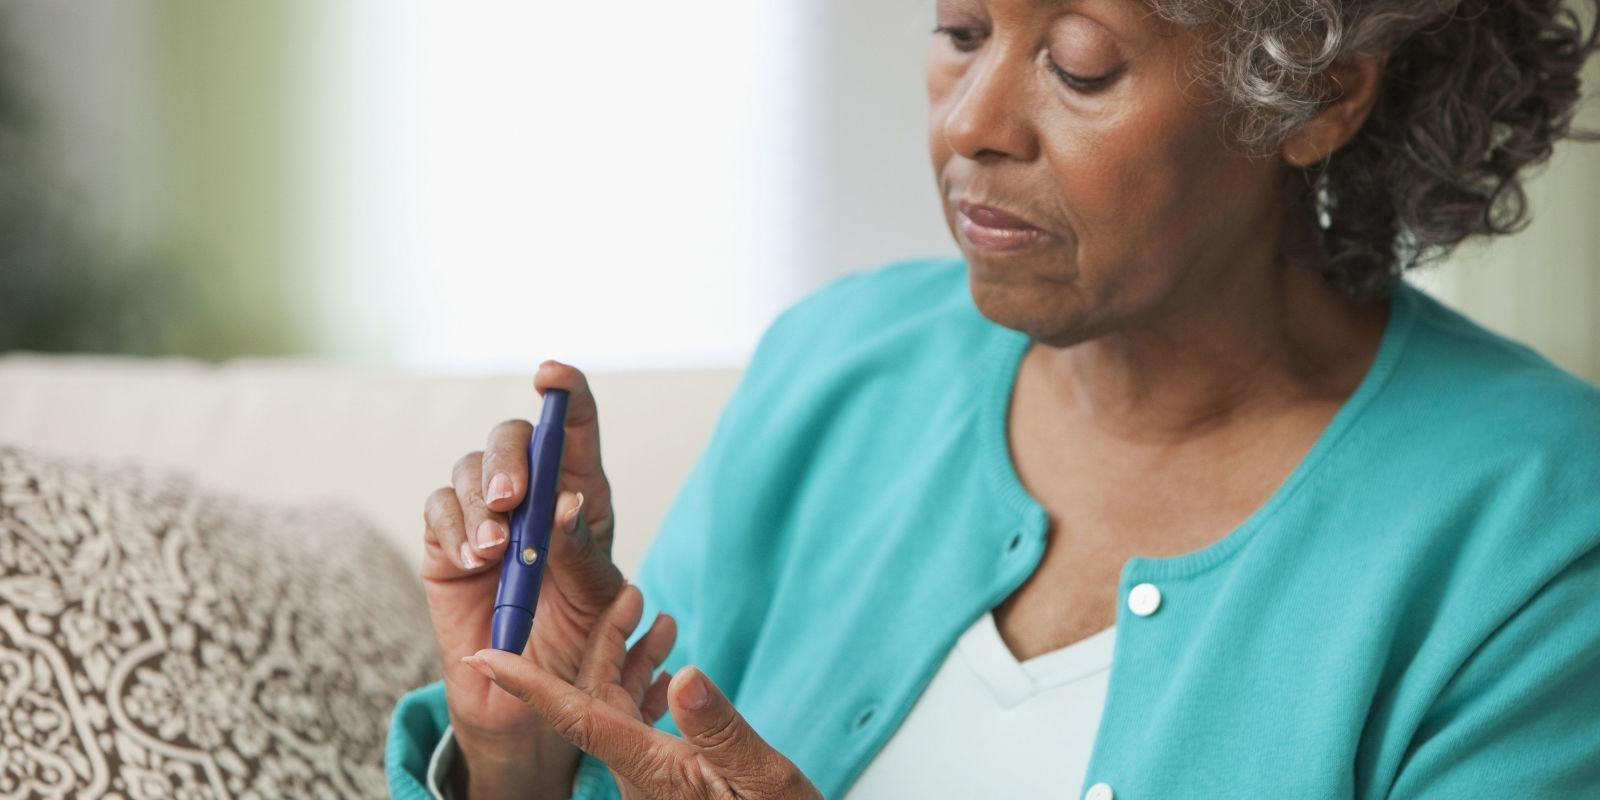 What Is A Hypo For A Diabetic?